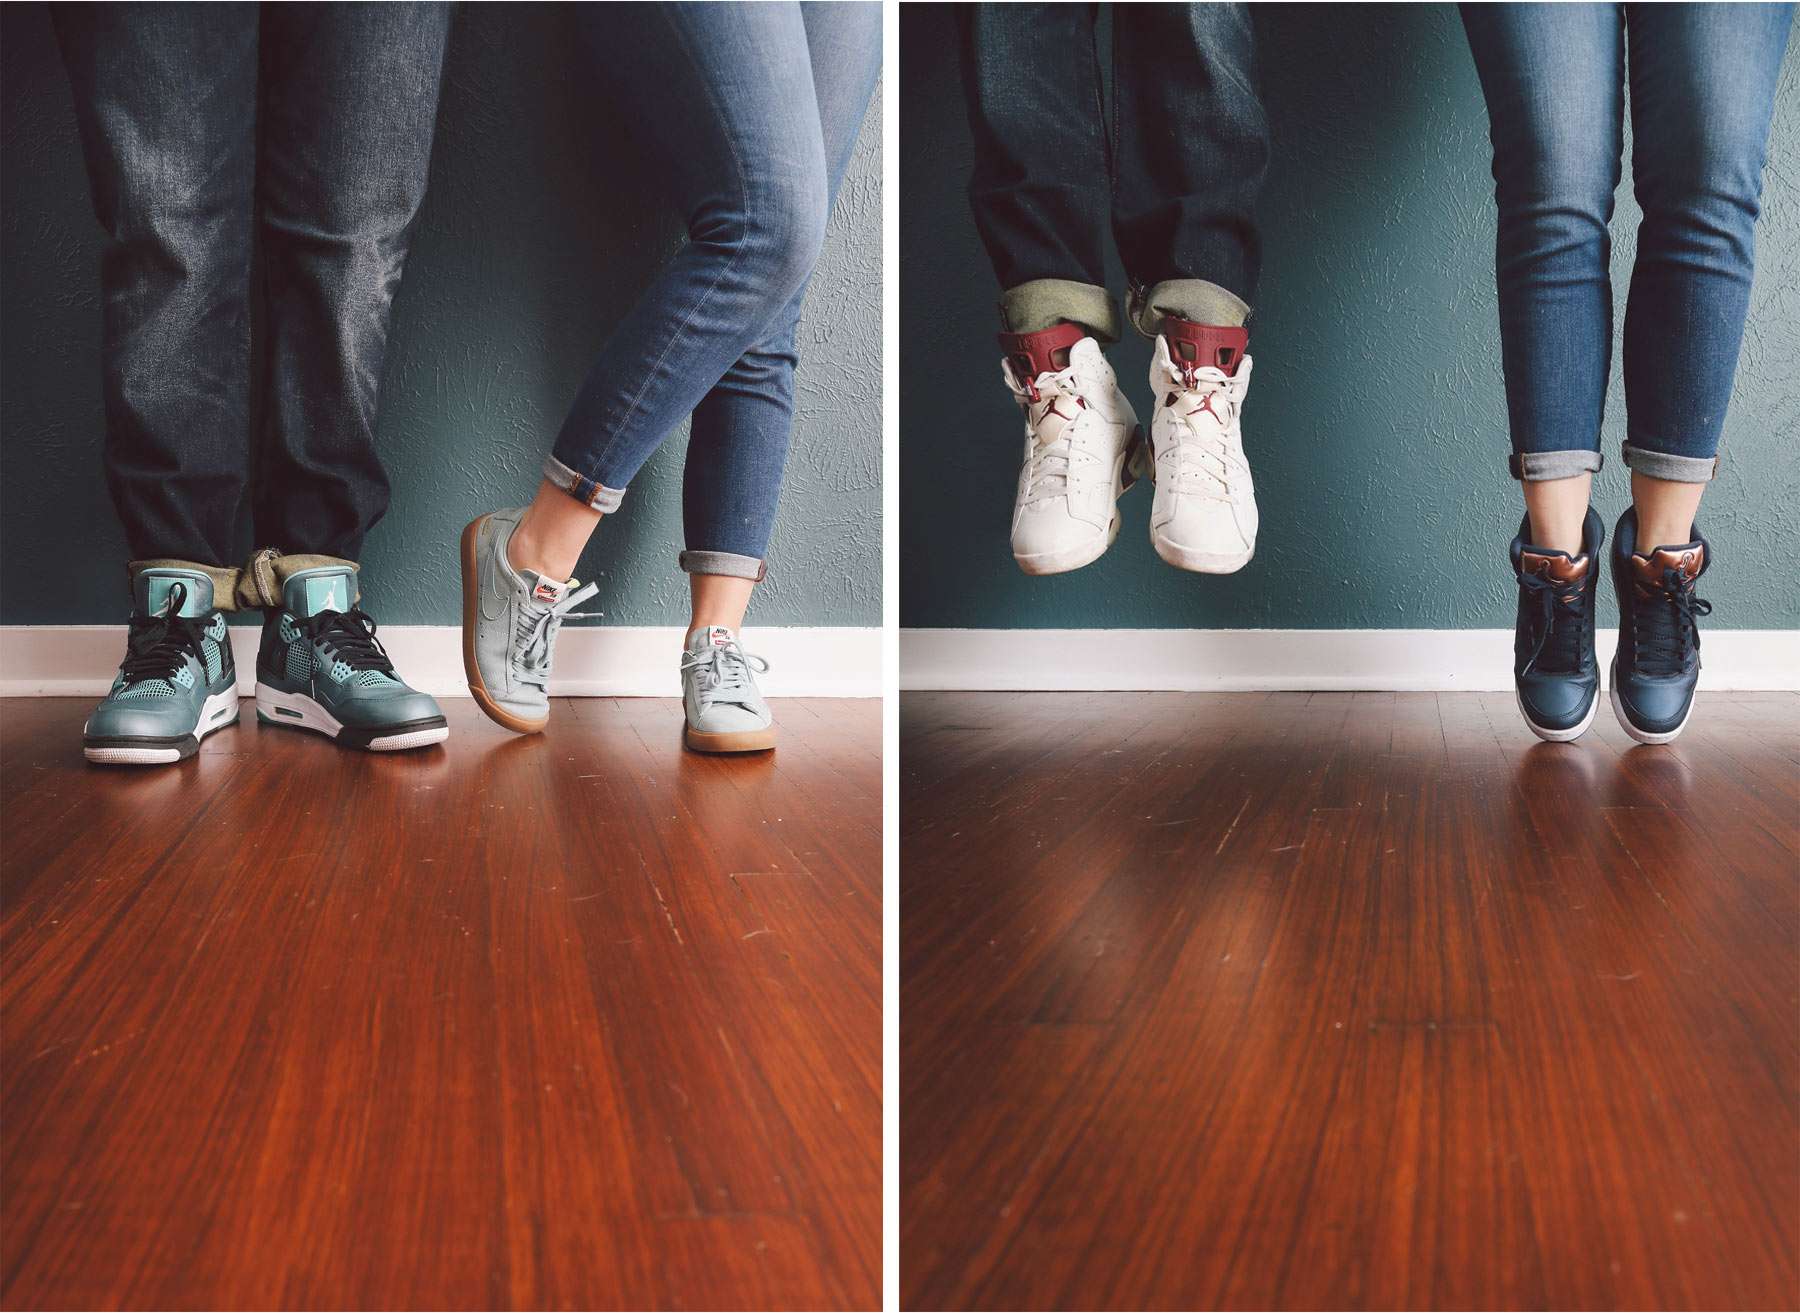 07-Vick-Photography-Fly-to-You-Engagement-Session-Denver-Colorado-Home-Shoe-Collection-Danielle-and-Tom.jpg